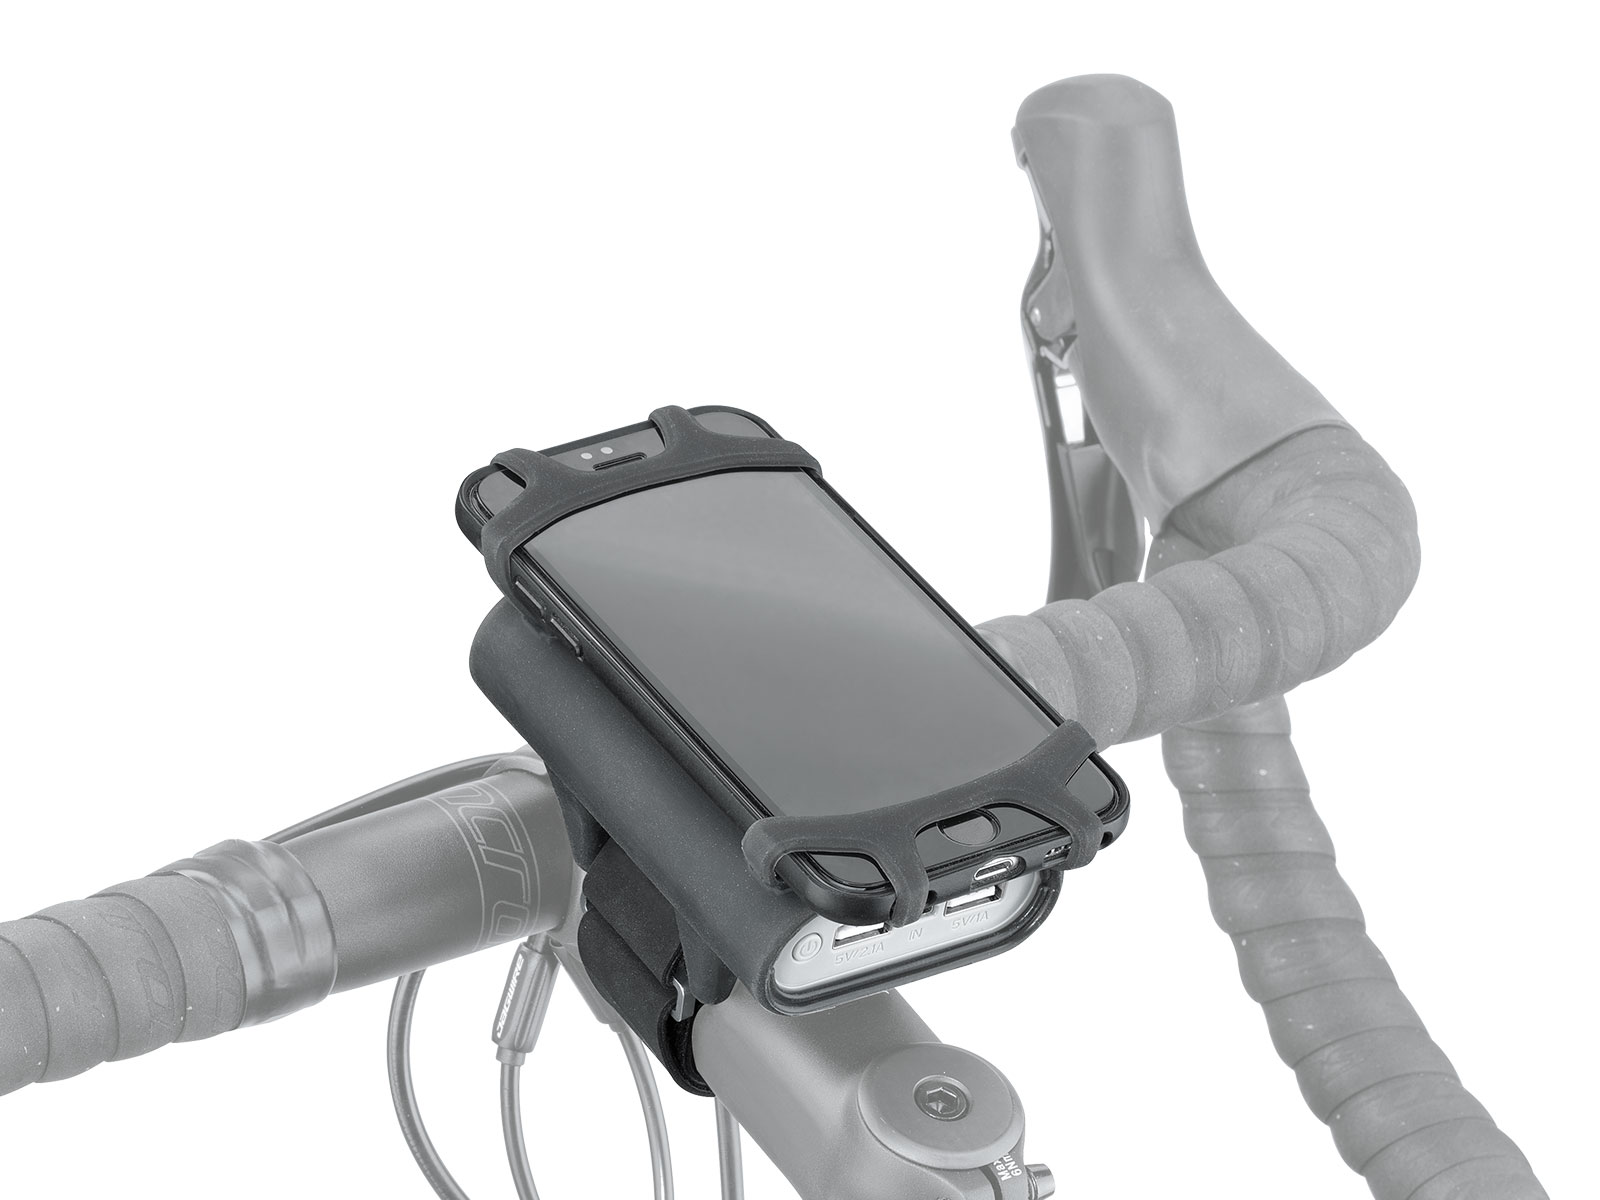 SMARTPHONE HOLDER WITH POWERPACK 7800 MAH